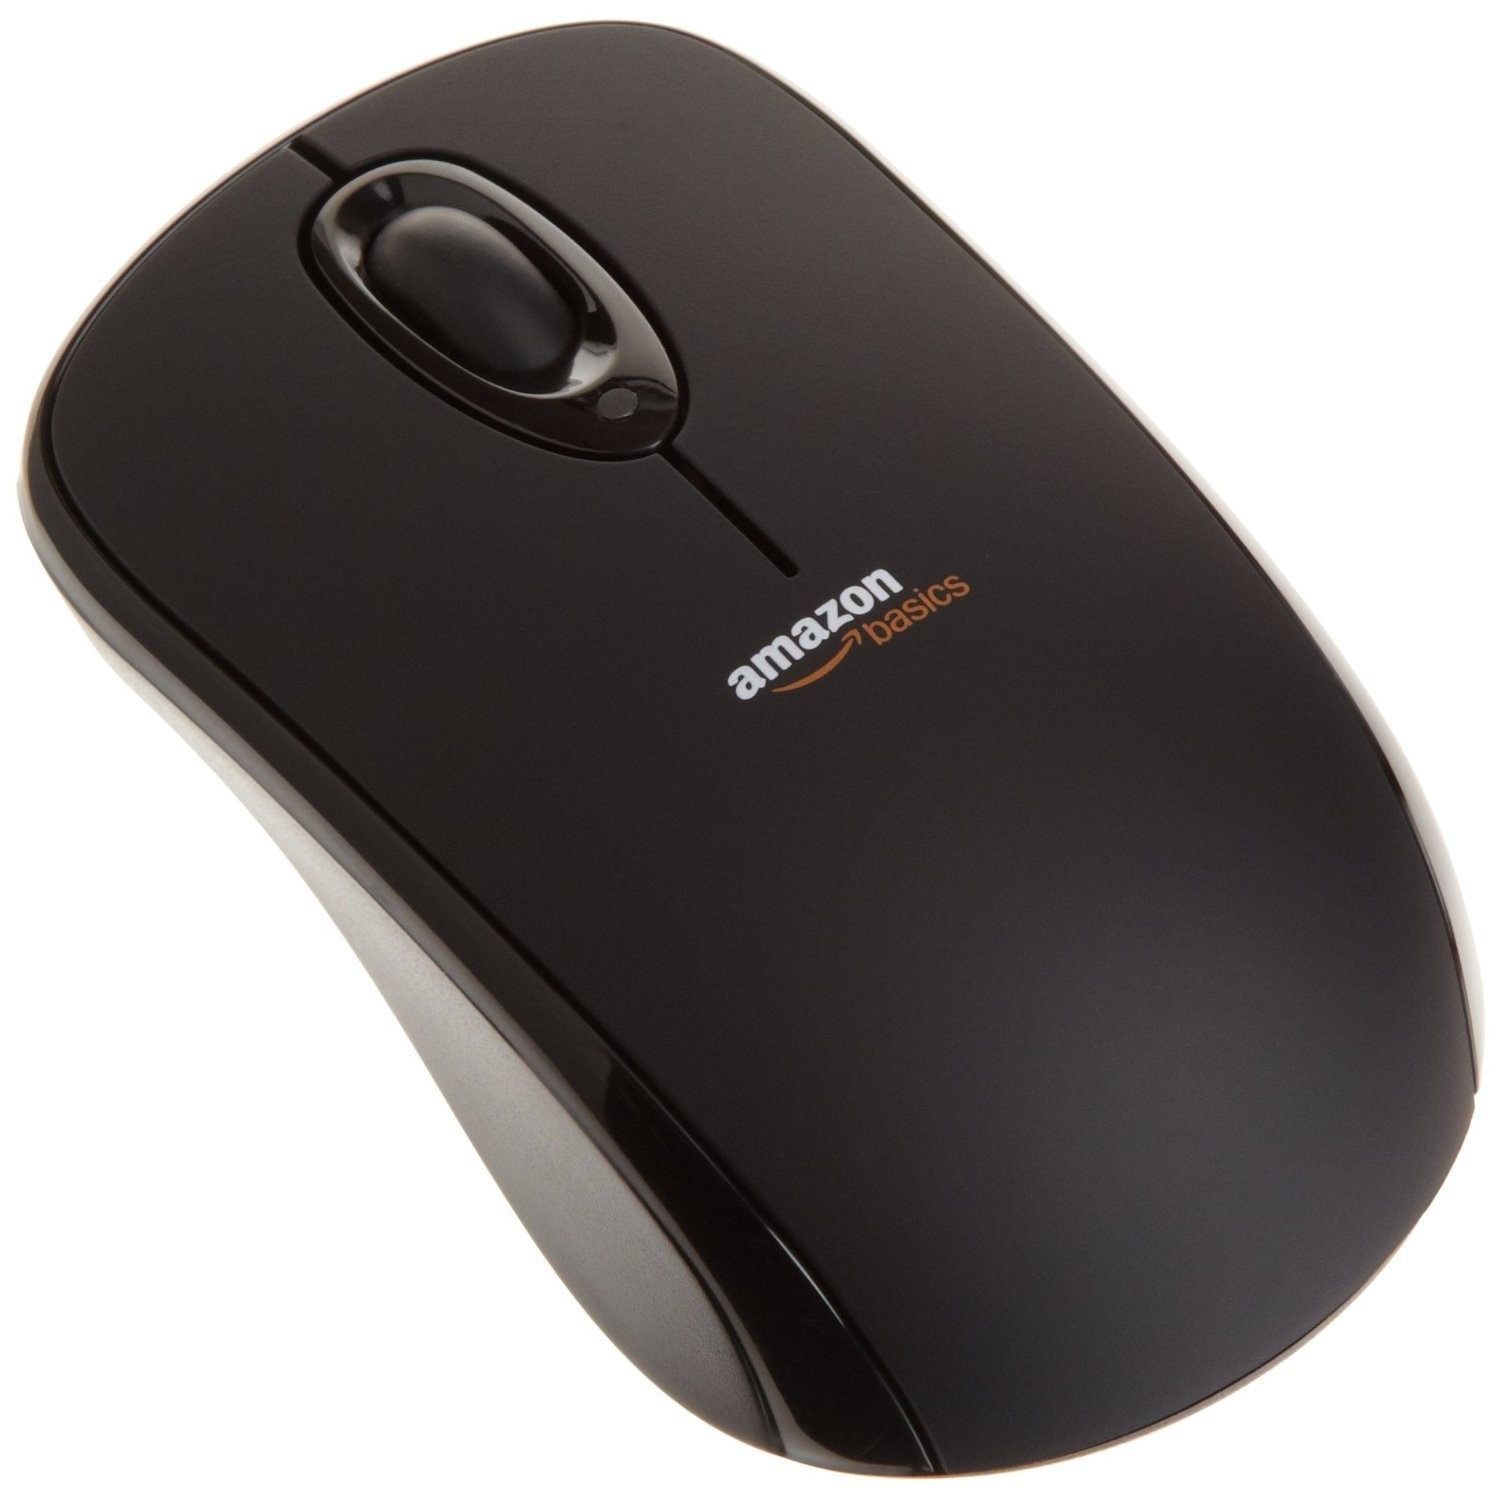 AmazonBasics wireless mouse with nano receiver